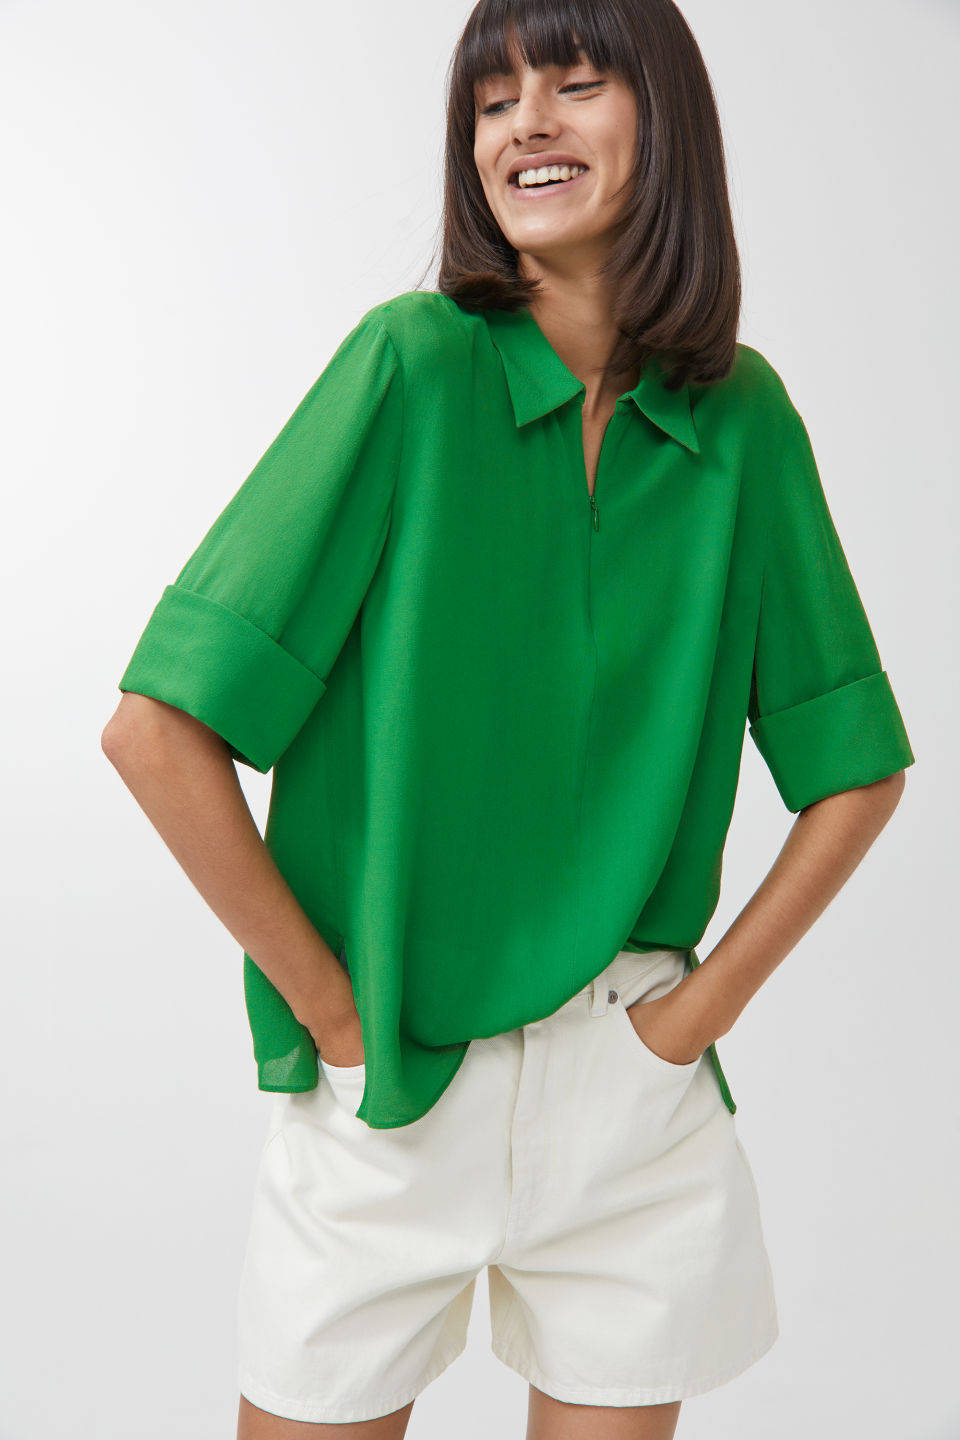 This crepe zip neck top at Arket is so cool I love it.